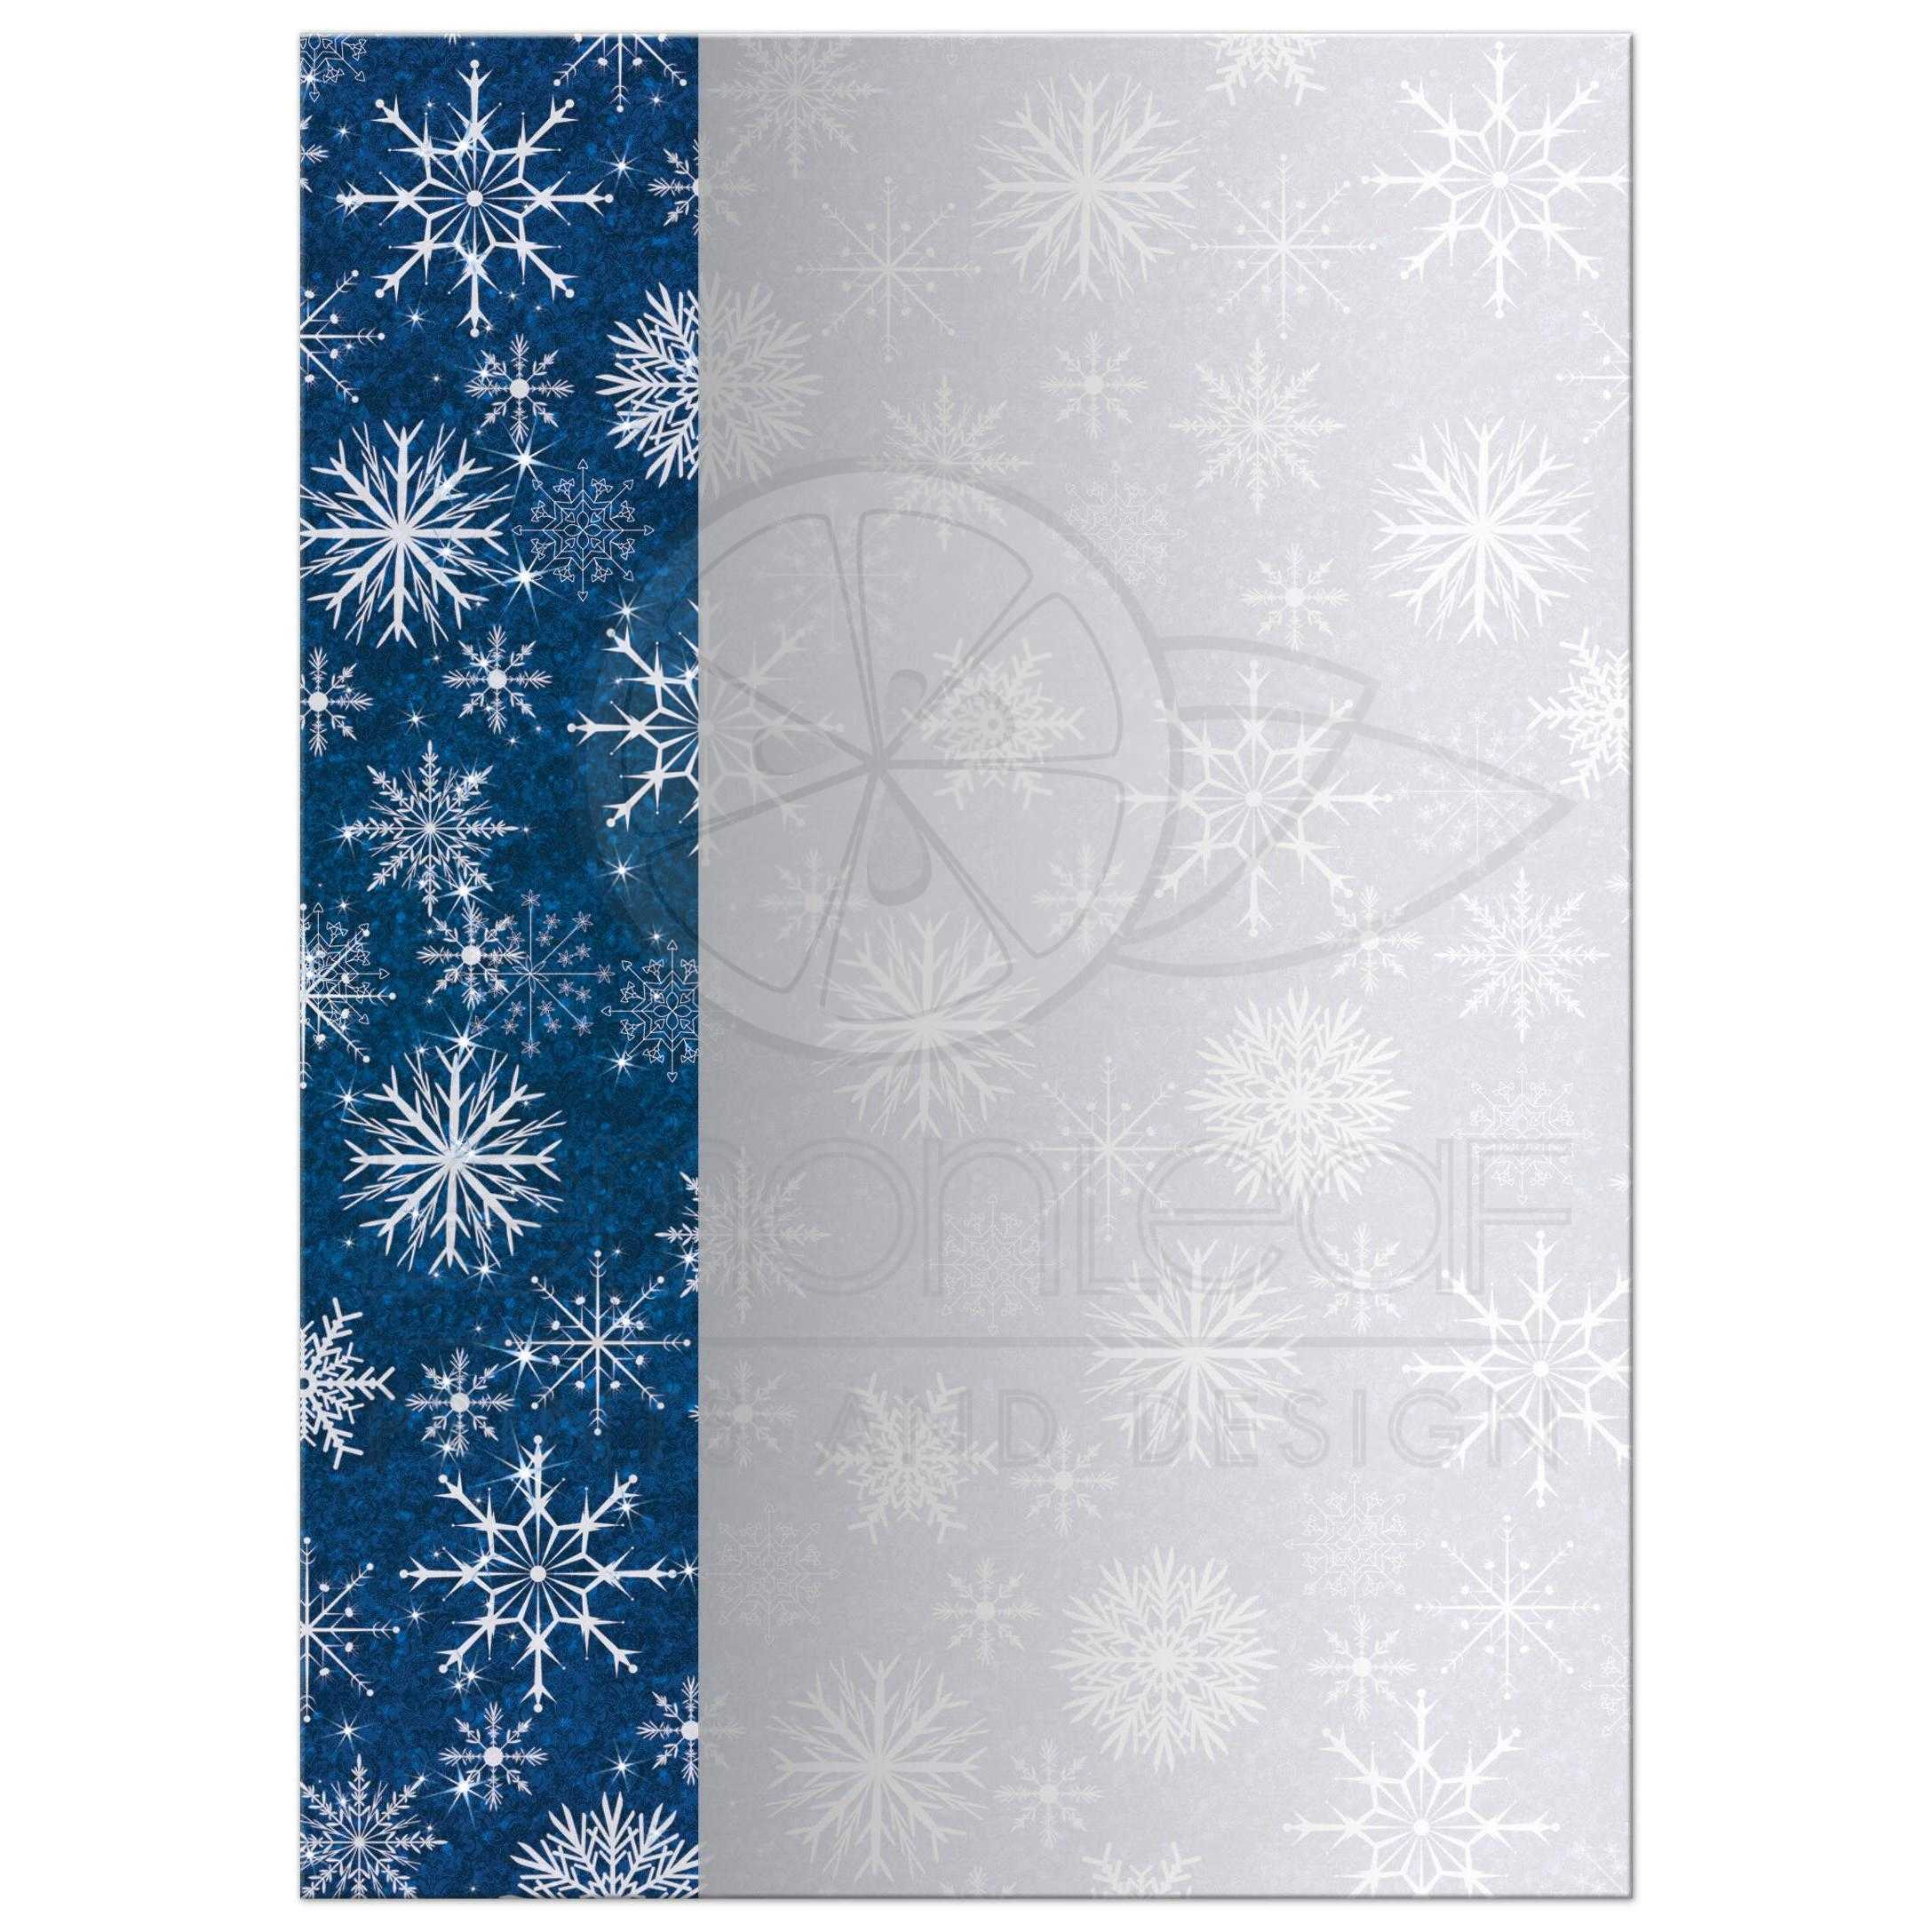 Great Royal Blue And Silver Grey Snowflakes Hanukkah Party Invite With Star Of David